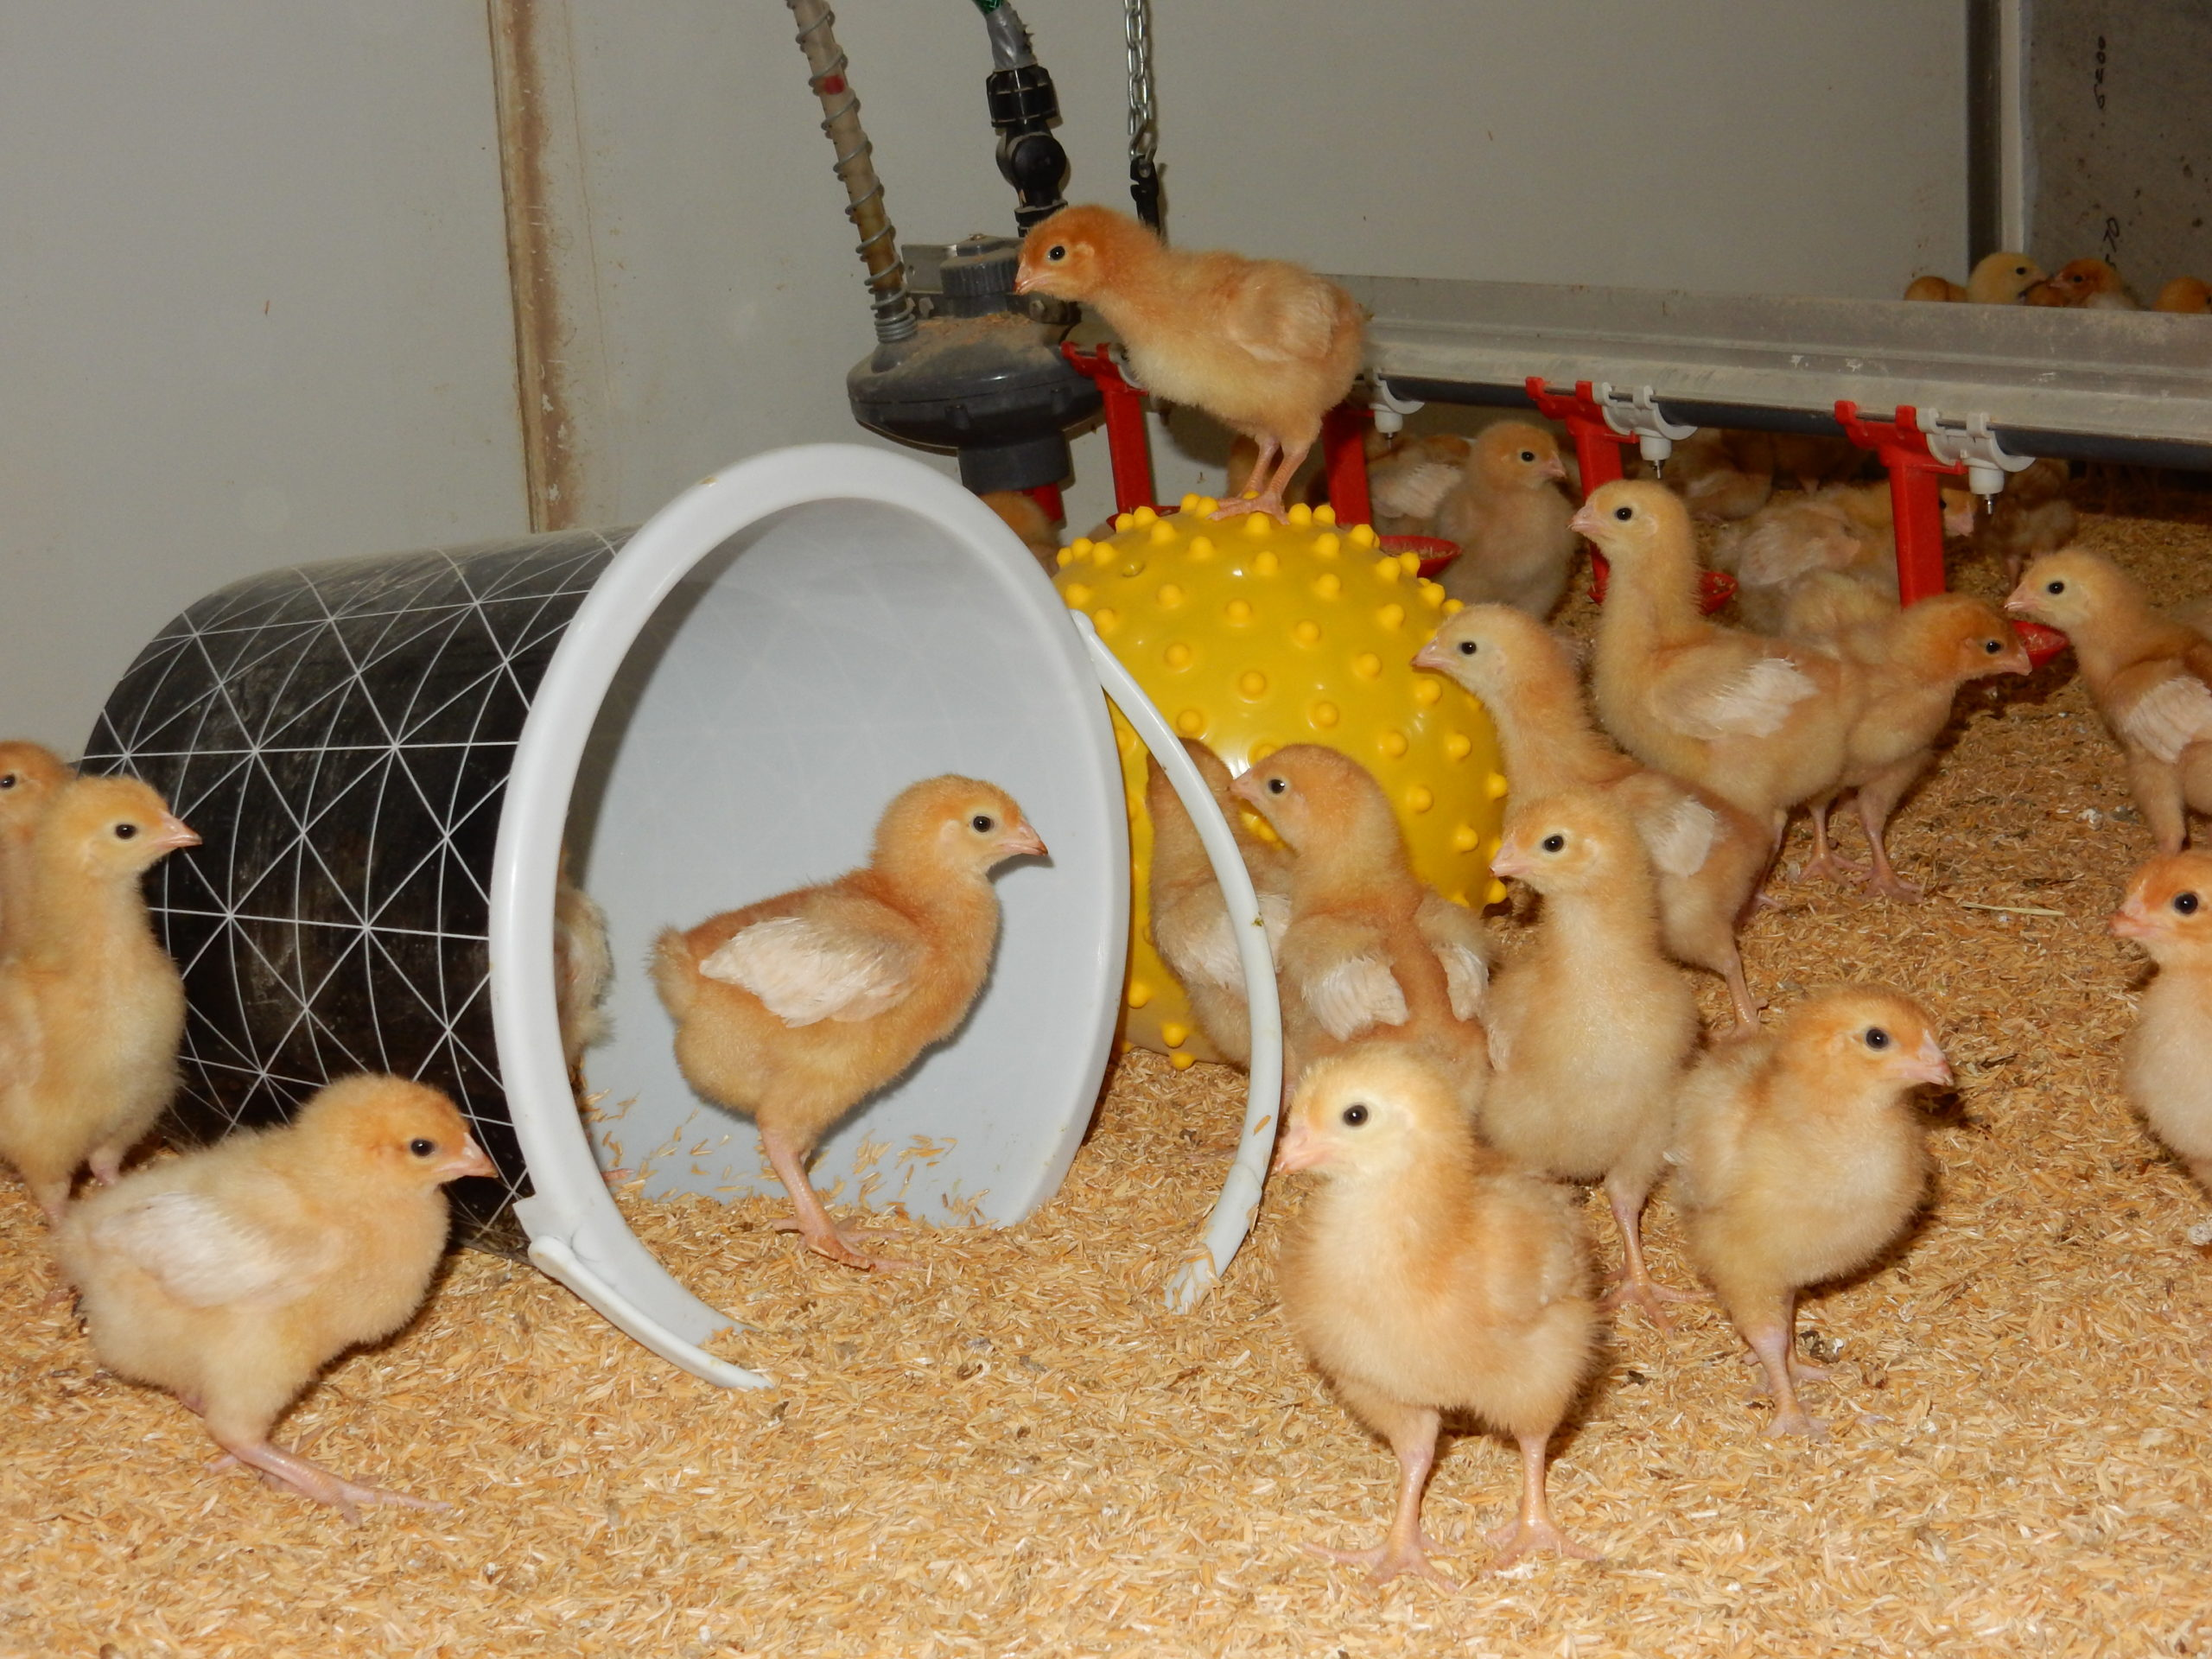 Chicks and a cup